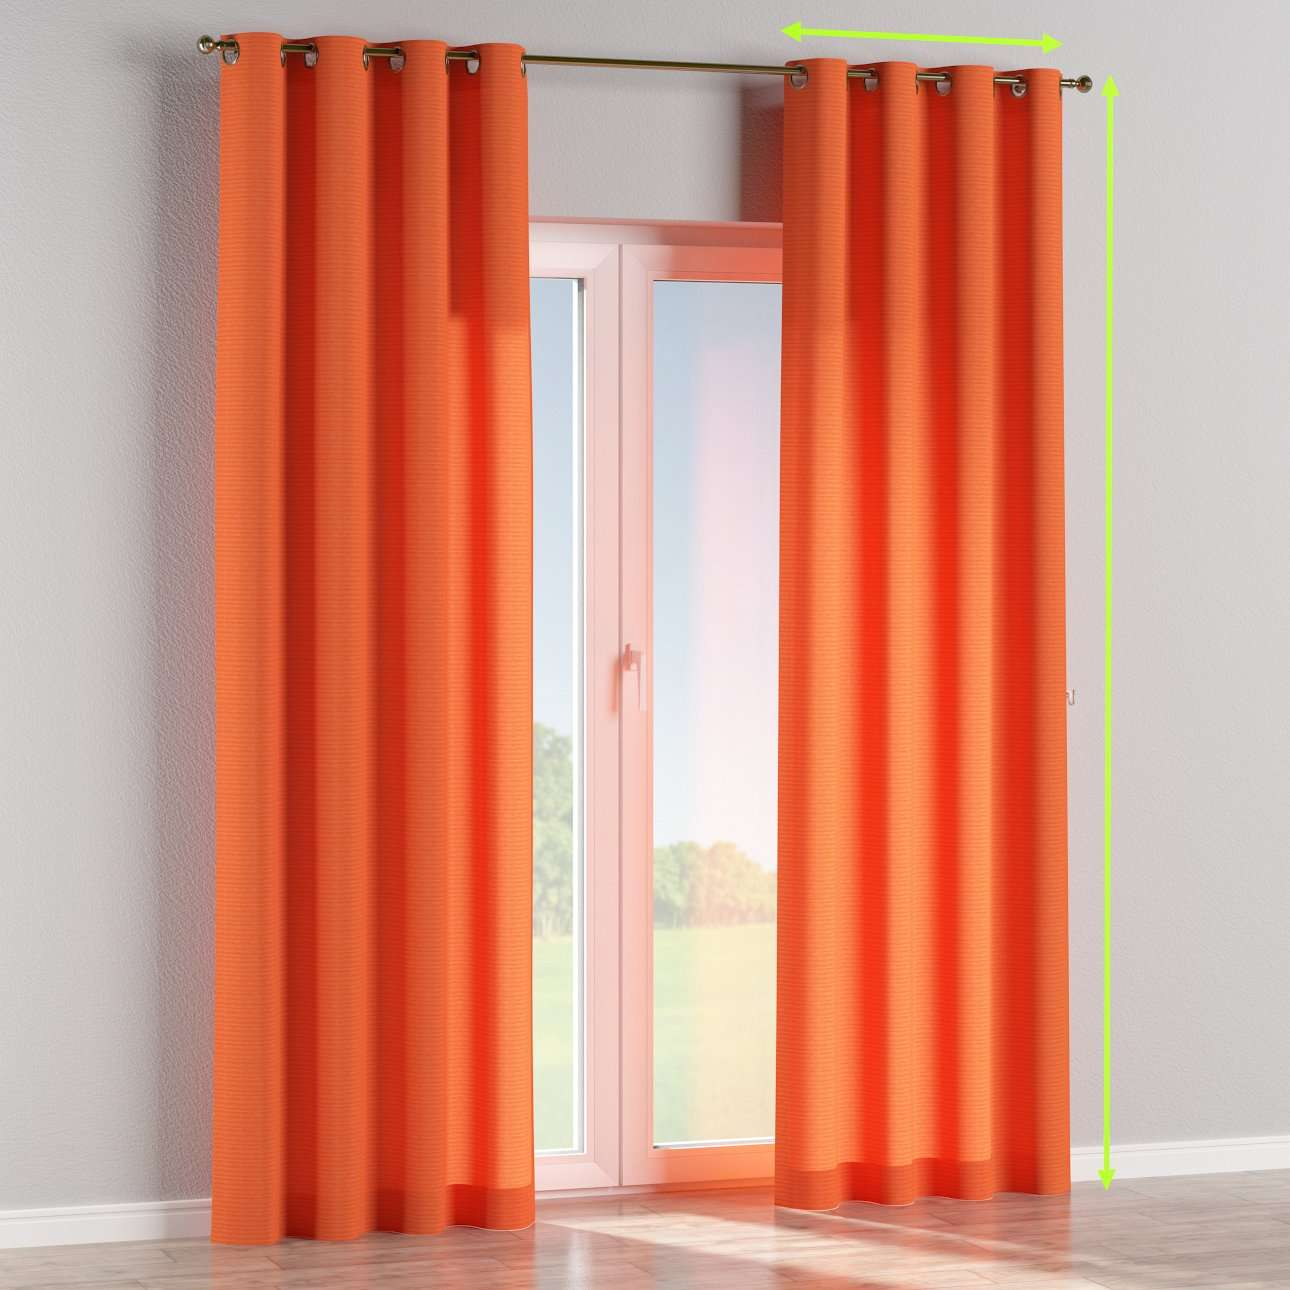 Eyelet curtain in collection Jupiter, fabric: 127-35